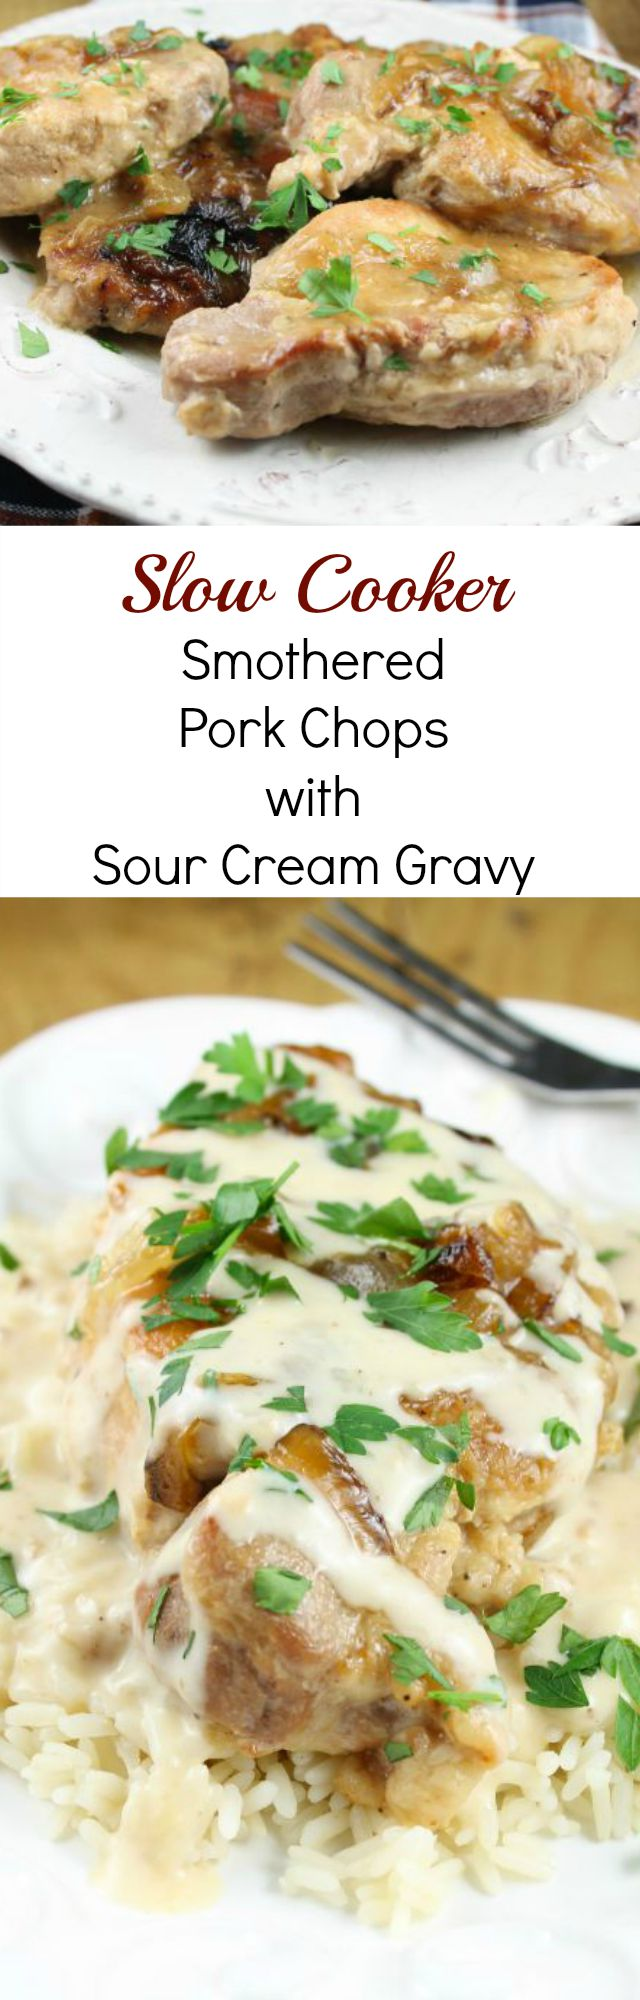 Recipes using sour cream and pork chops